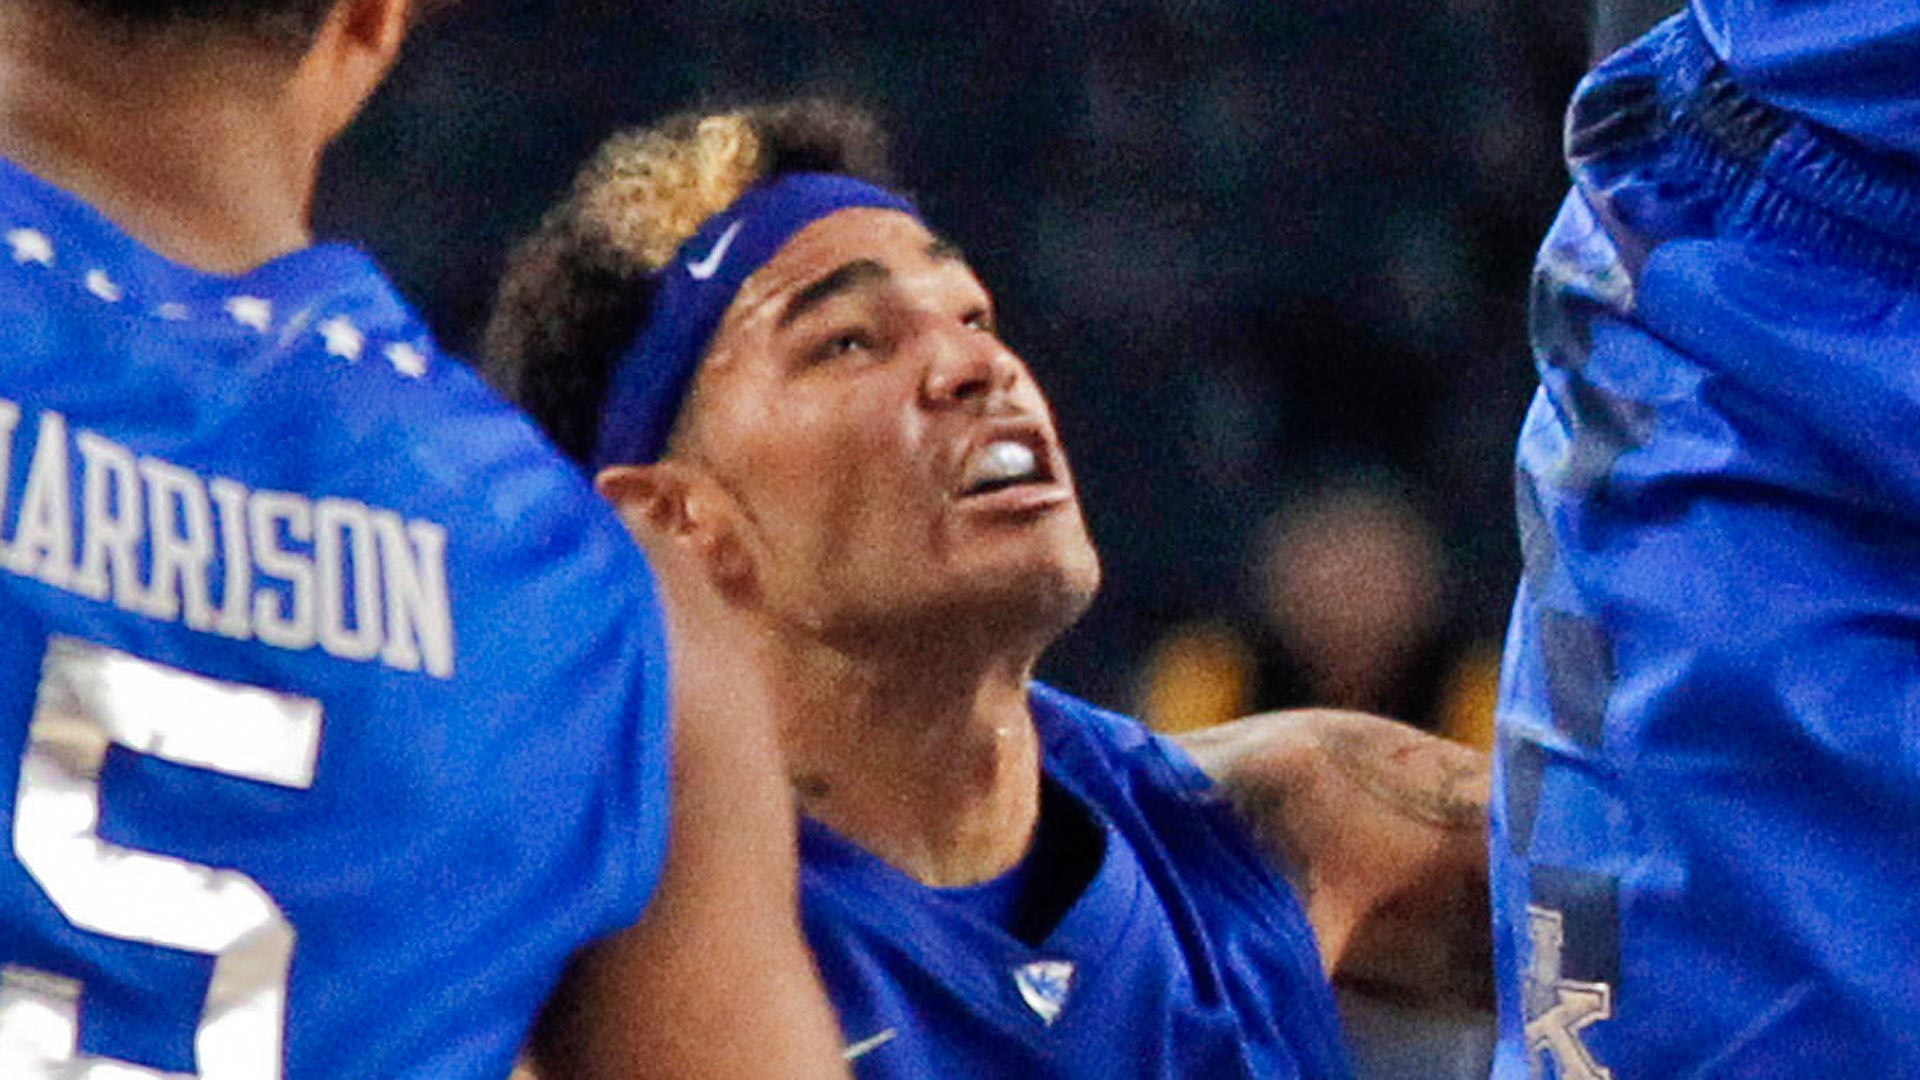 Willie Cauley-Stein-121013-AP-FTR.jpg